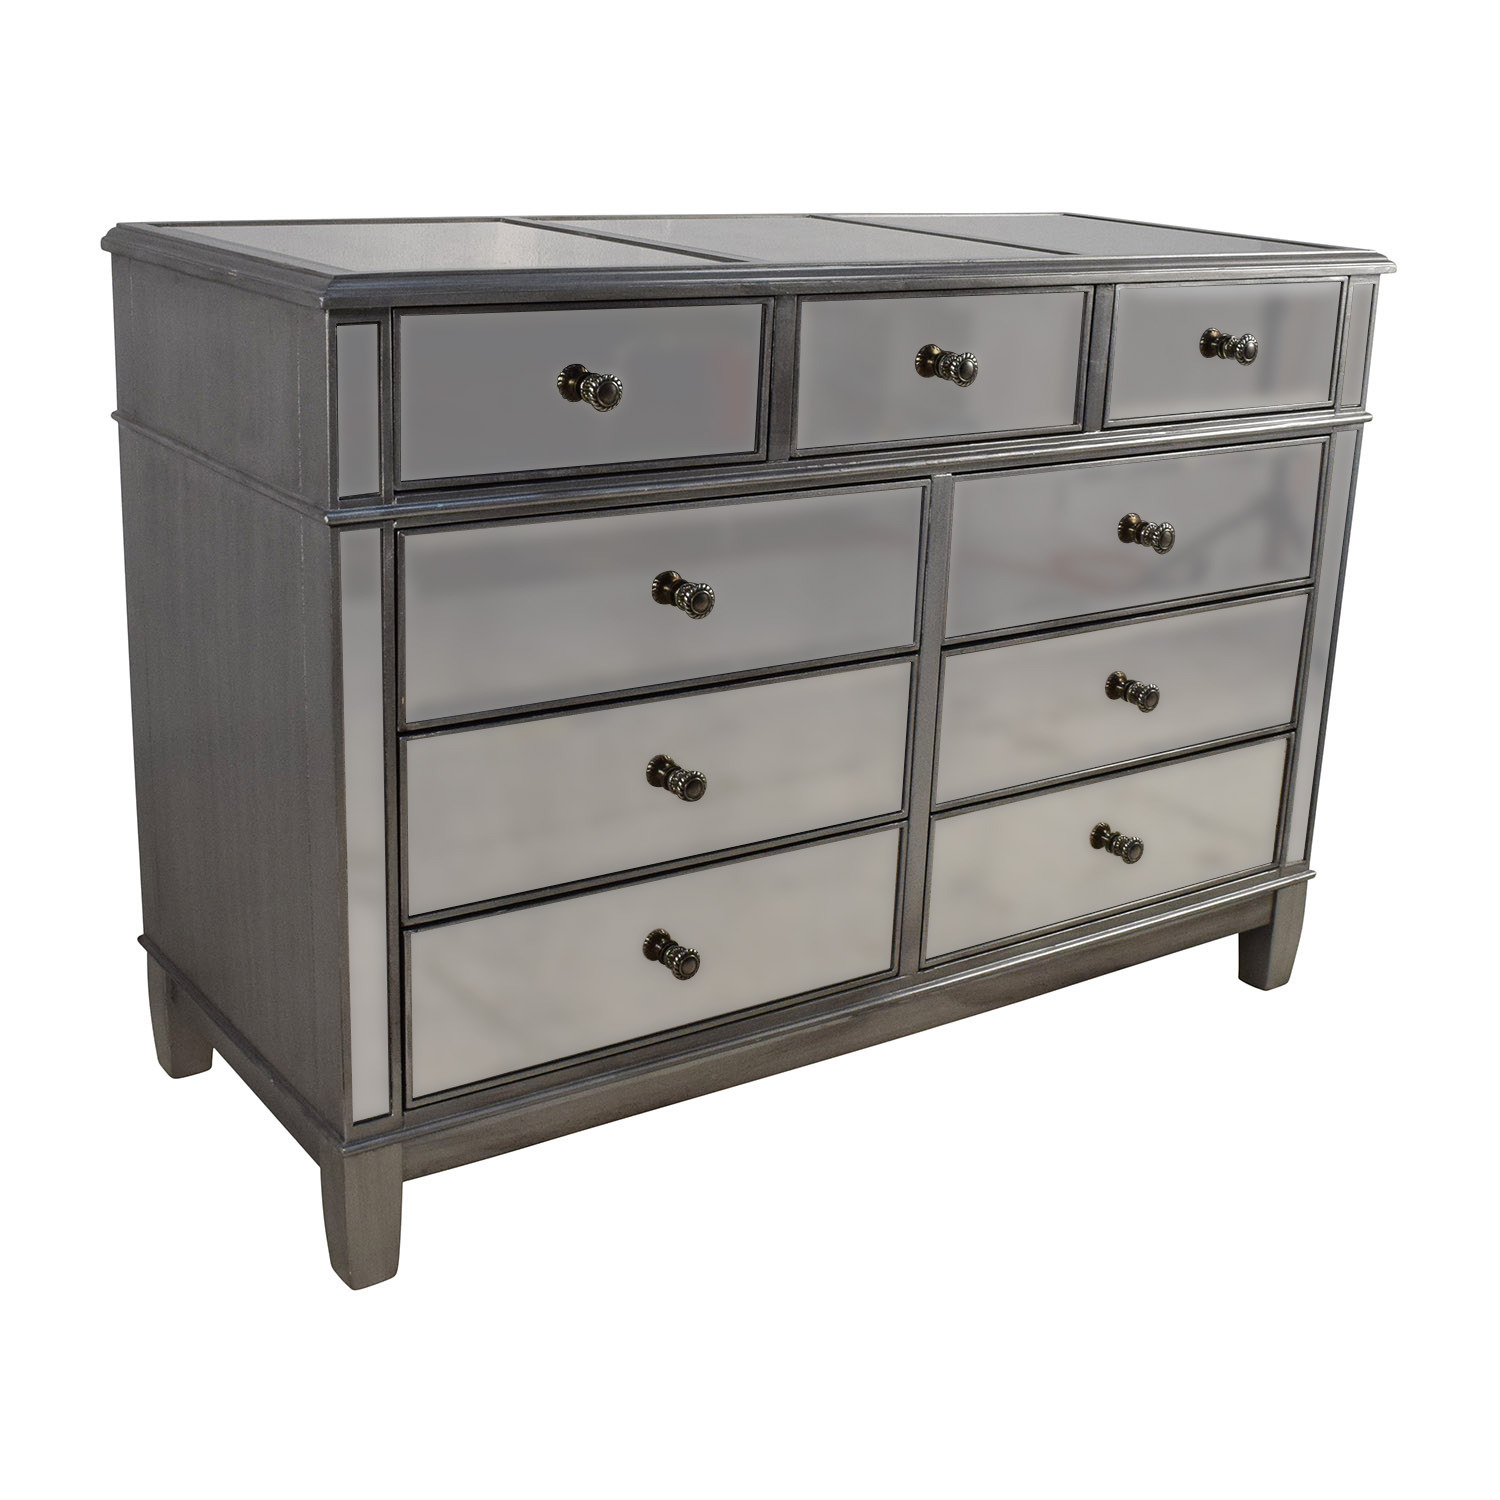 ... Storage; Pier 1 Pier 1 Hayworth Collection Mirrored Silver Dresser On  Sale ...